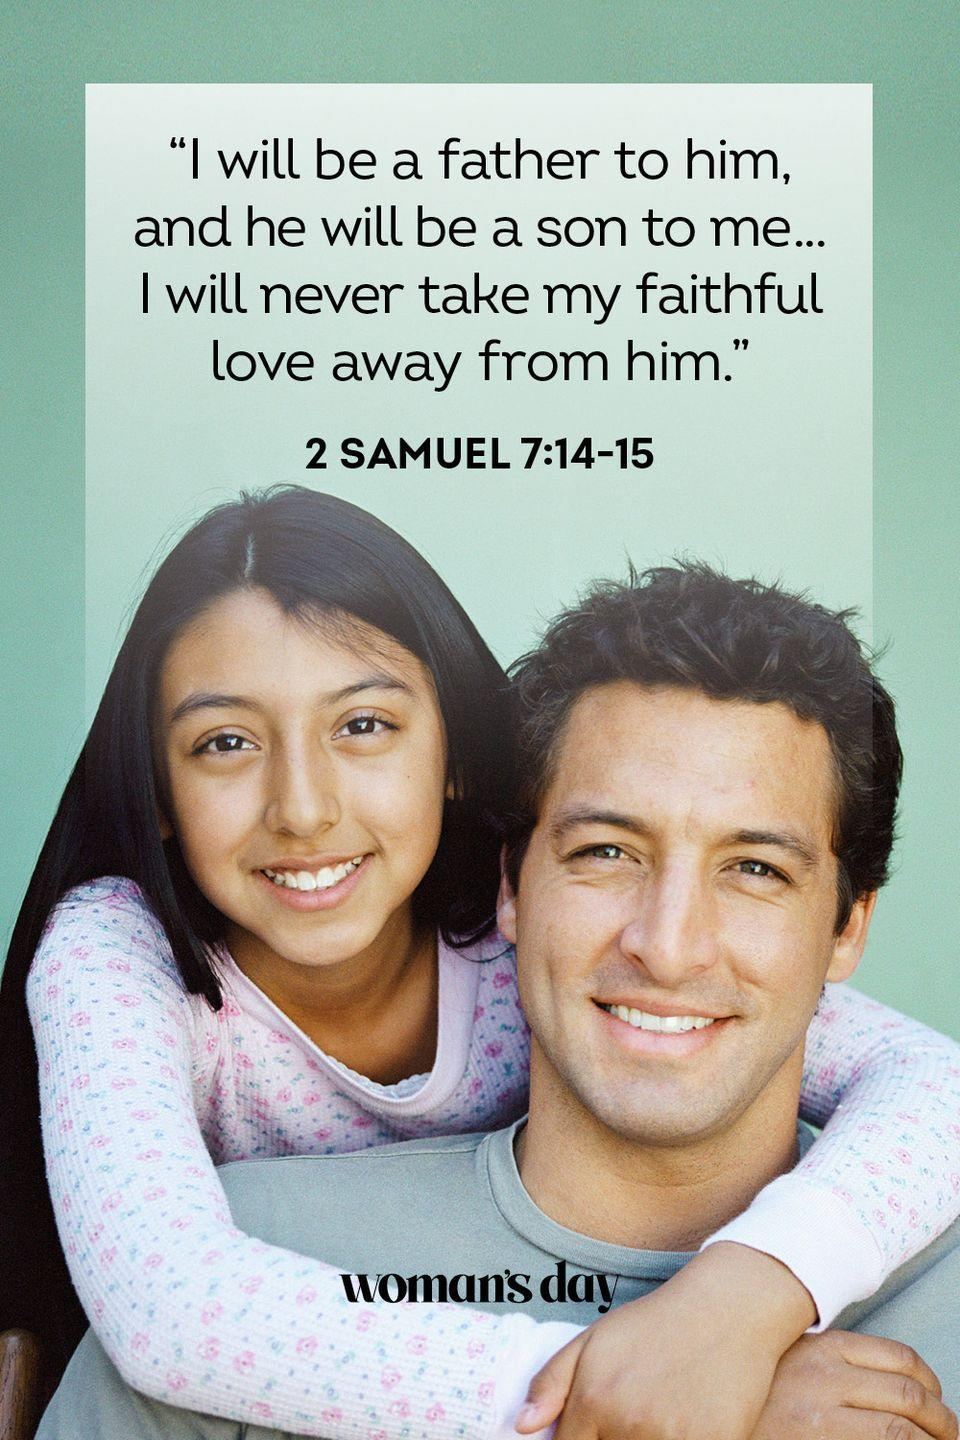 """<p>""""I will be a father to him, and he will be a son to me ... I will never take my faithful love away from him.""""</p><p><strong>The Good News: </strong>For the dad who helped you through your missteps, there's this passage that recognizes that his love never wavers — even when things get tough.</p>"""